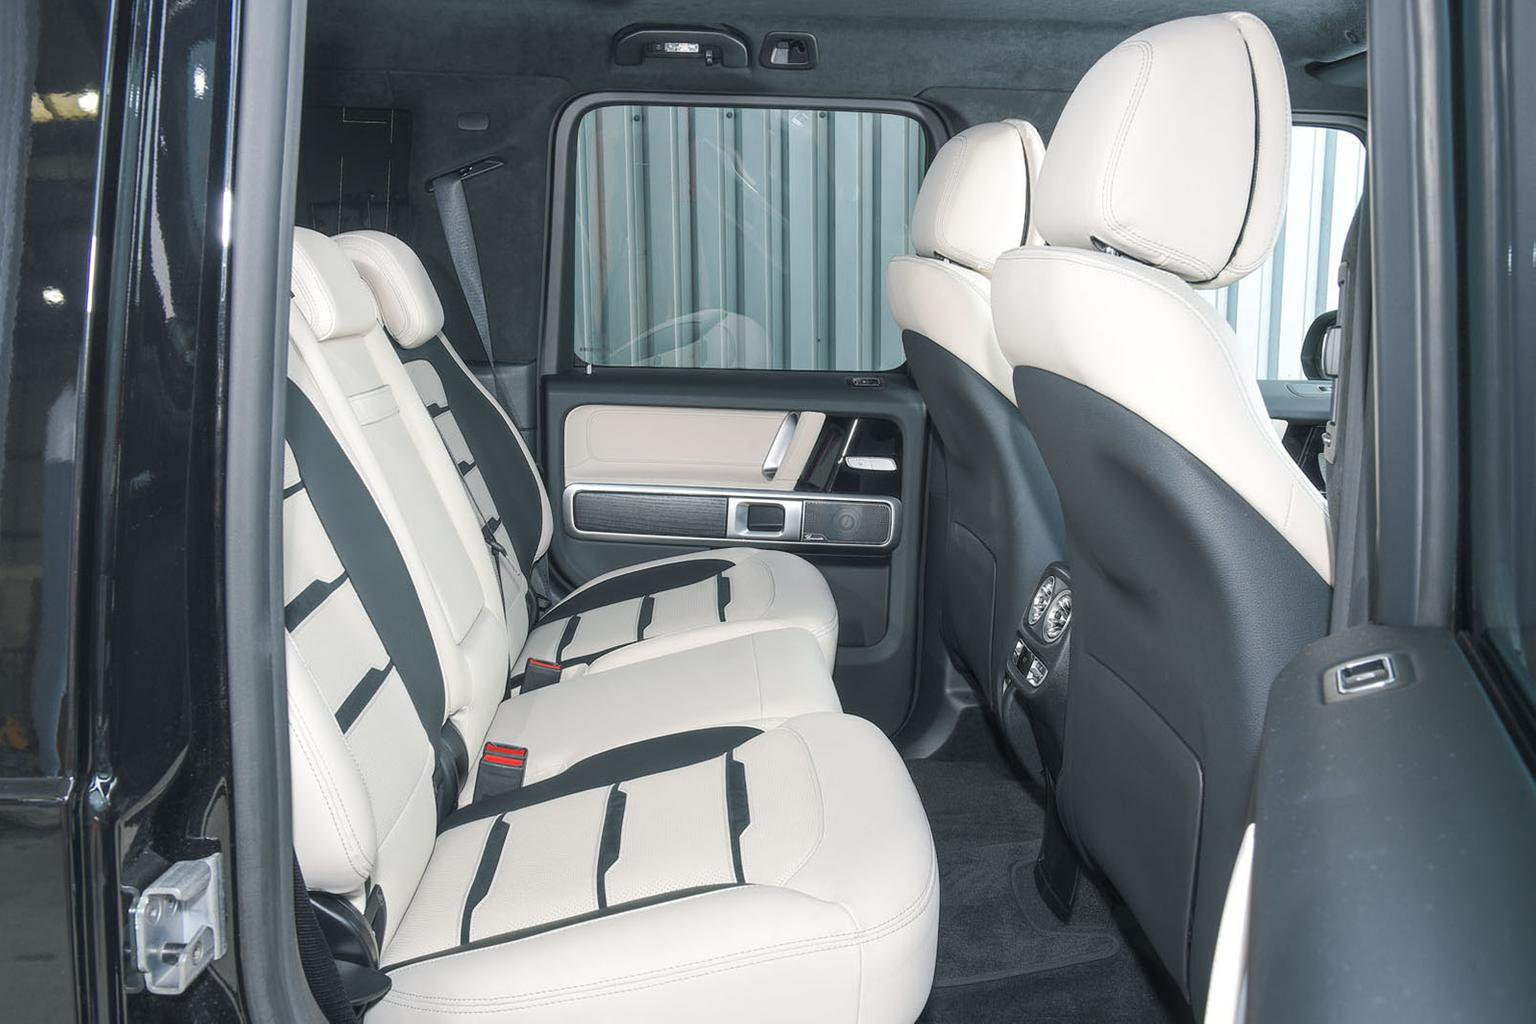 Mercedes Amg G63 Boot Space Size Seats What Car